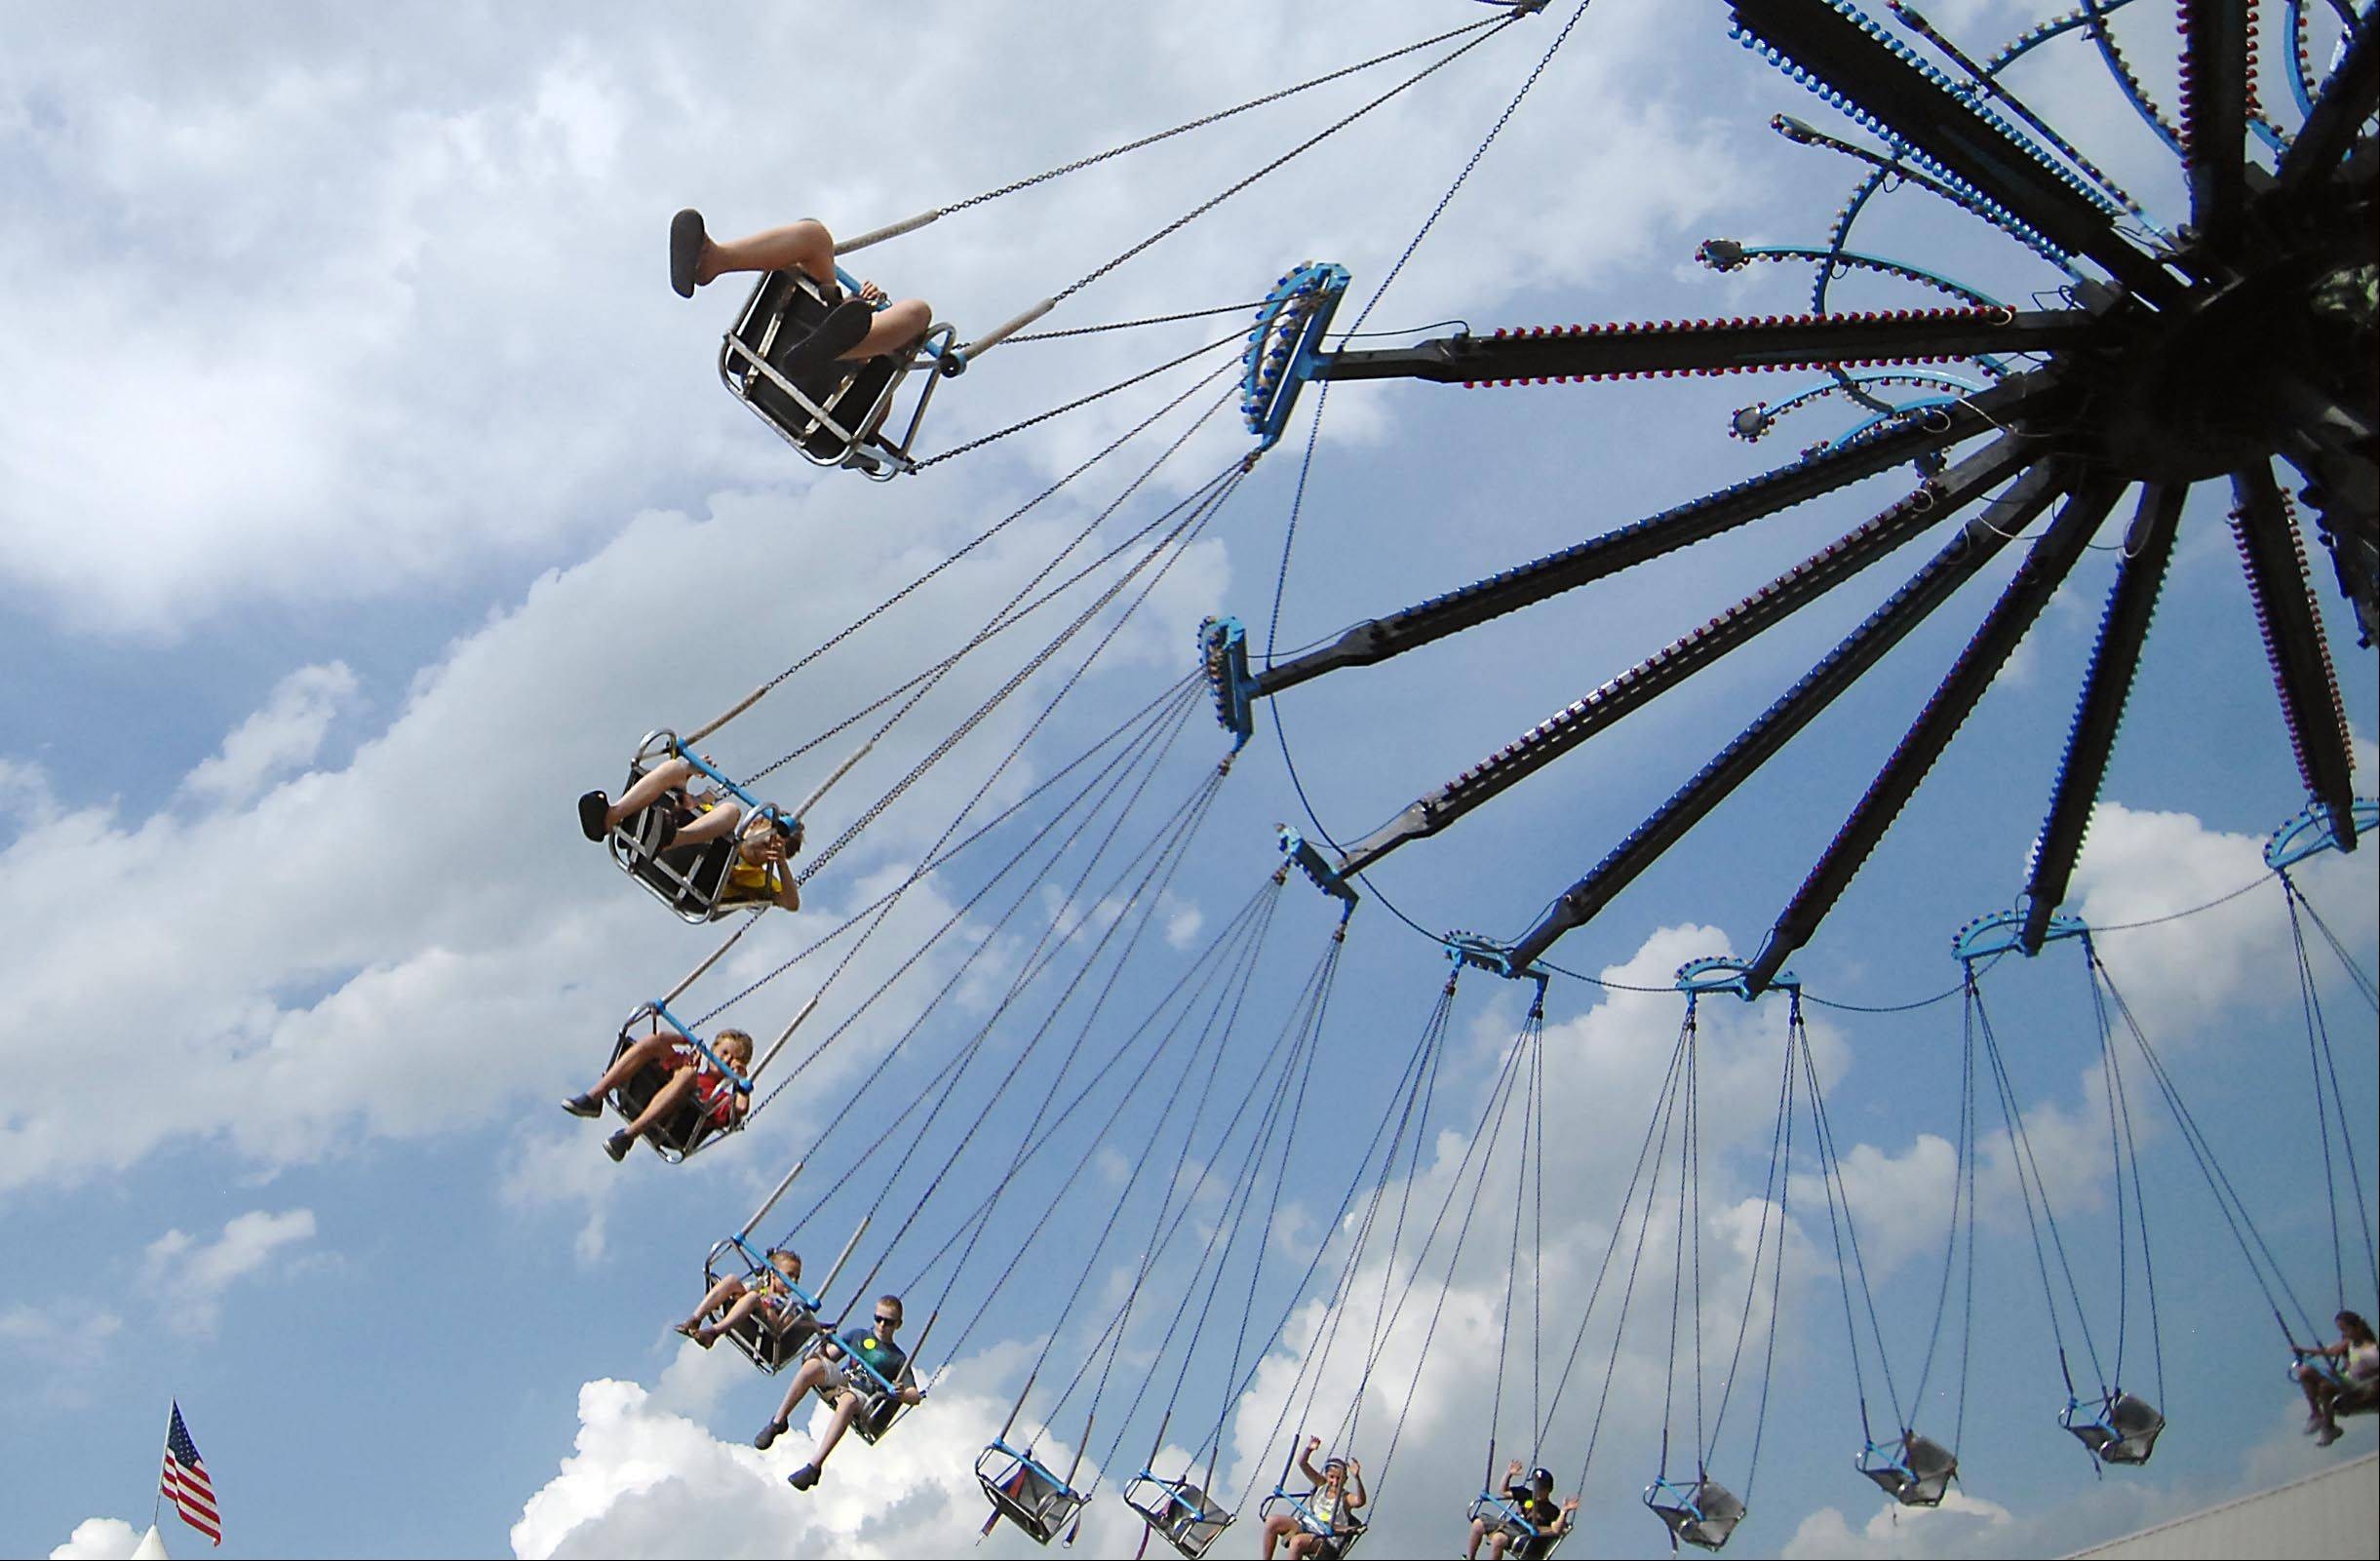 Yo-Yo riders enjoy the cool breeze on the first day of the Kane County Fair Wednesday in St. Charles.